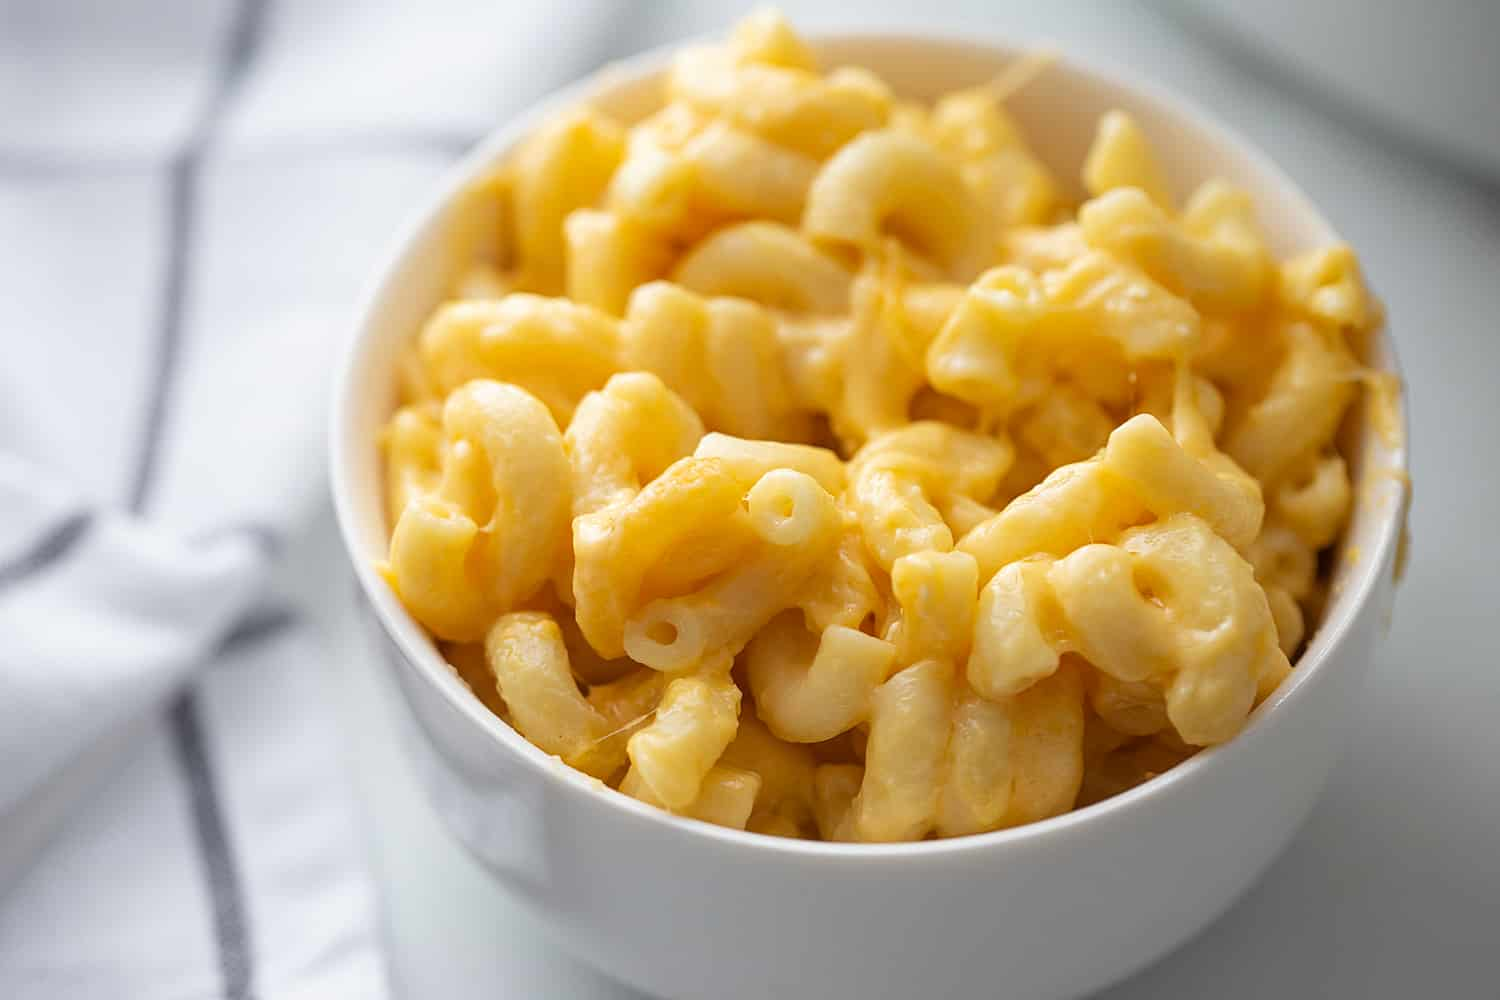 Easy Slow Cooker Mac and Cheese - Even the pickiest eaters will love easy slow cooker mac and cheese: a combo of sharp cheddar and Colby Jack plus a few surprise ingredients. #macandcheese #easyrecipe #halfscratched #slowcooker #pasta